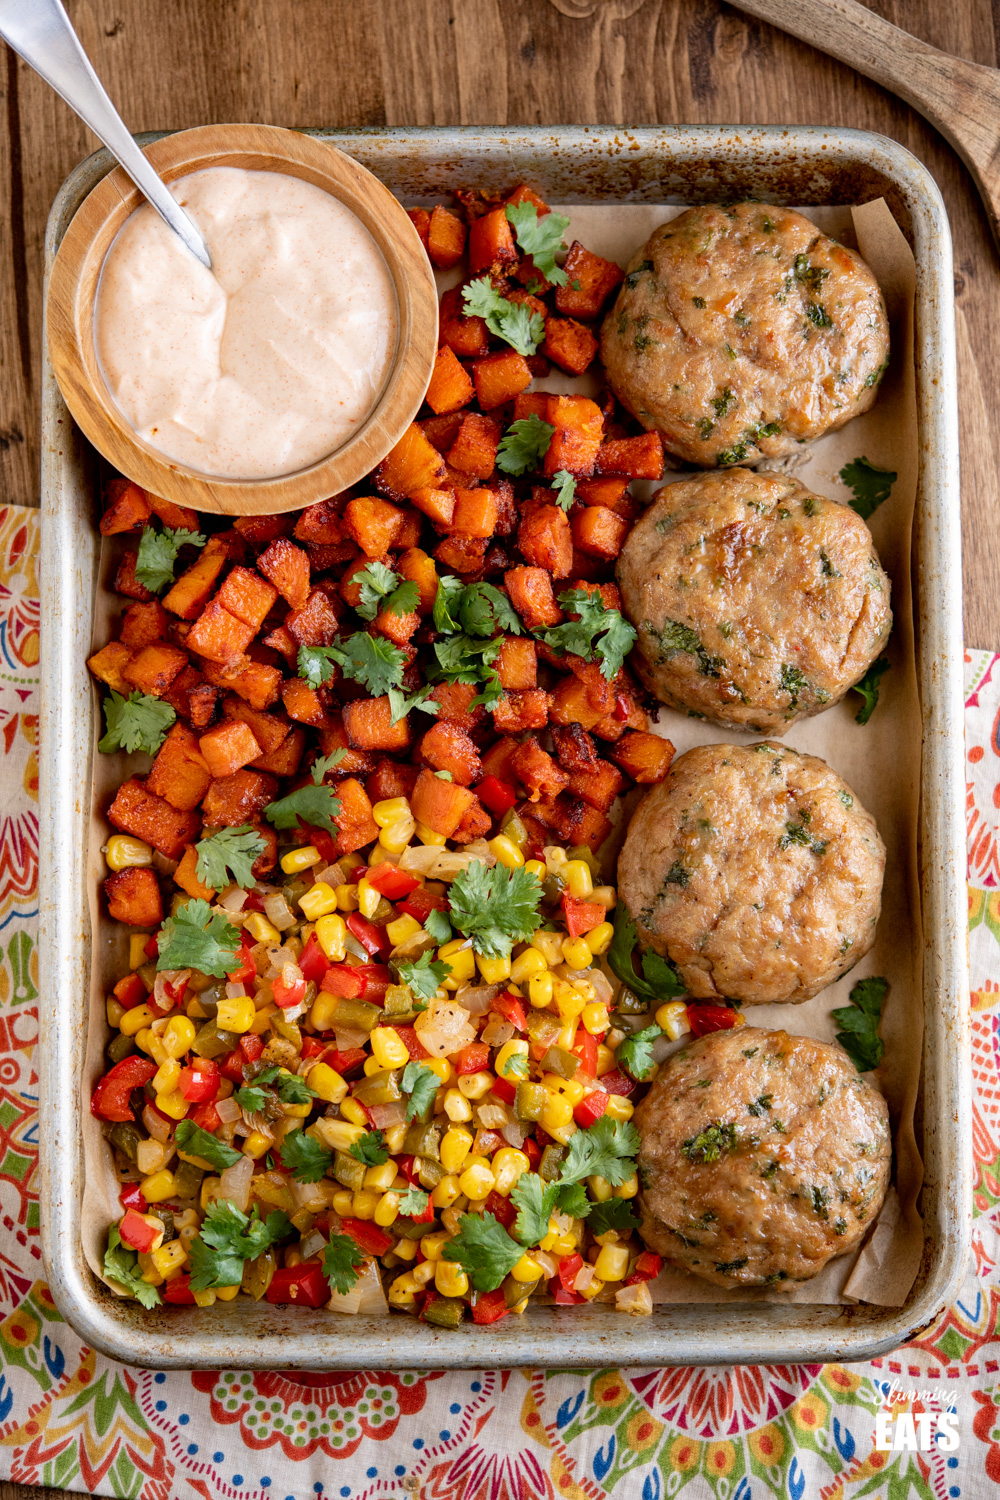 4 honey garlic chicken burgers on a baking tray with butternut squash, peppers, corn and dip